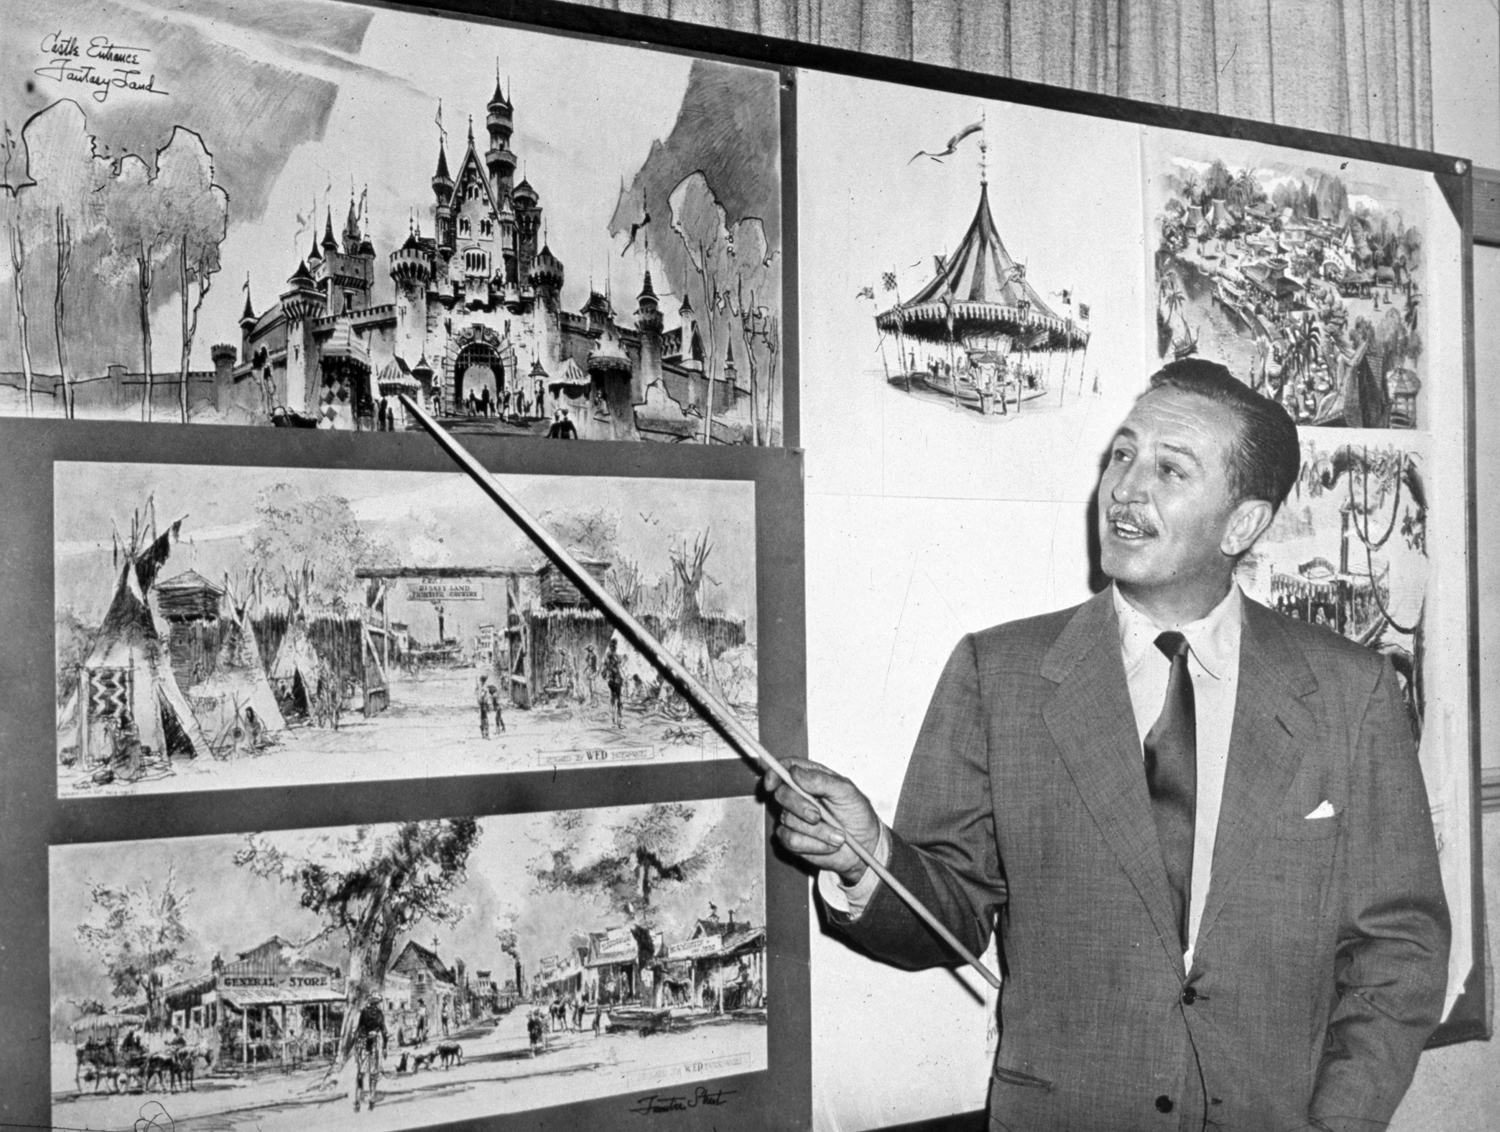 walt disney with the disneyland plans